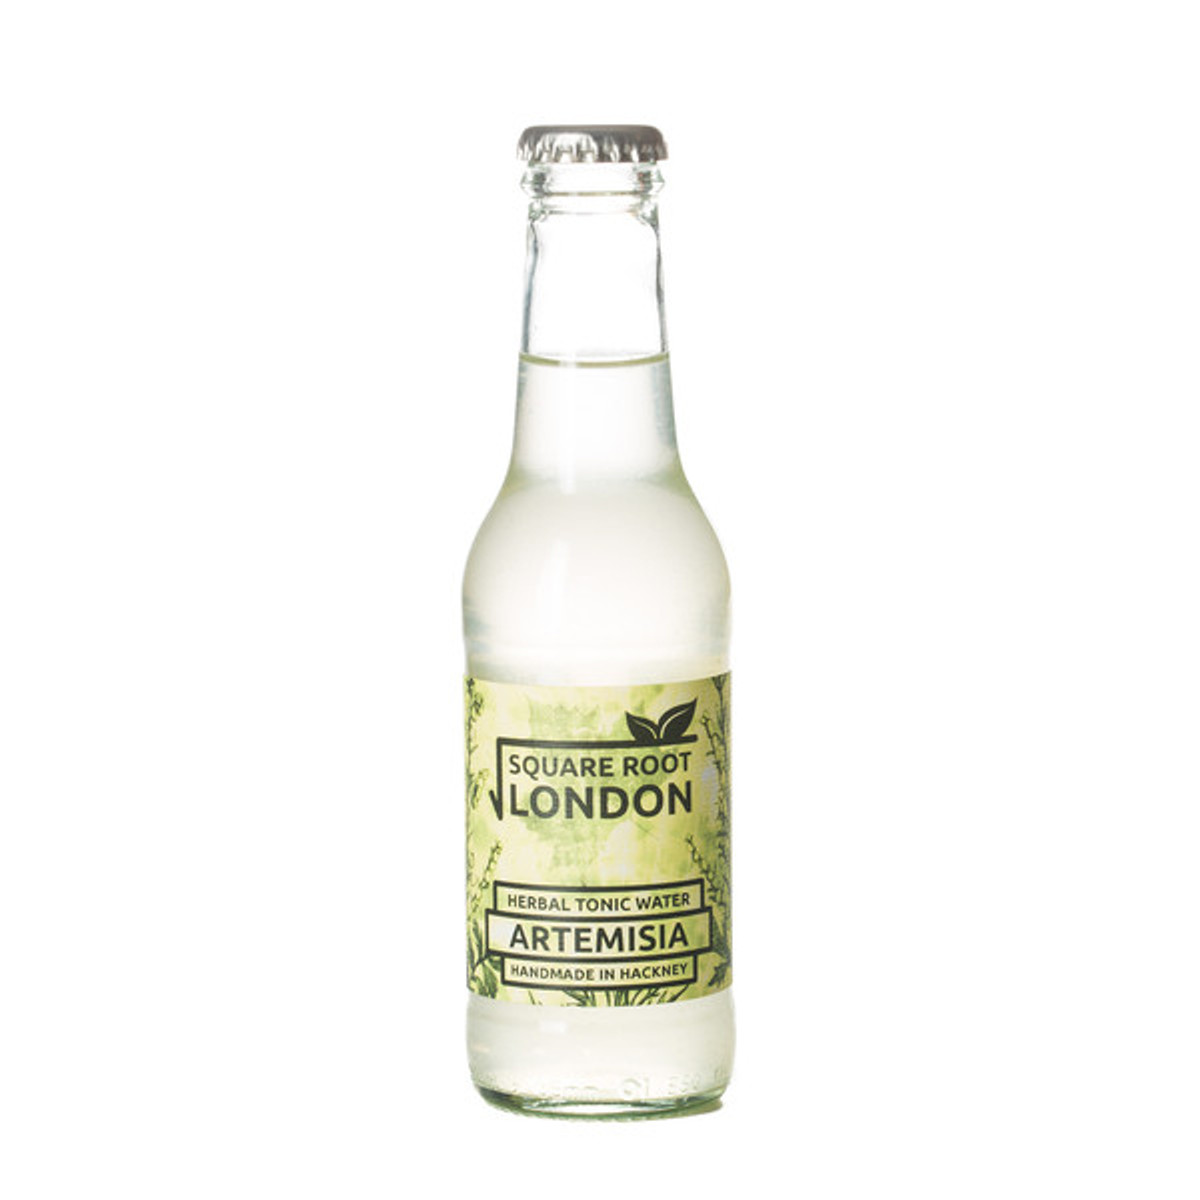 Artemisia Tonic Water